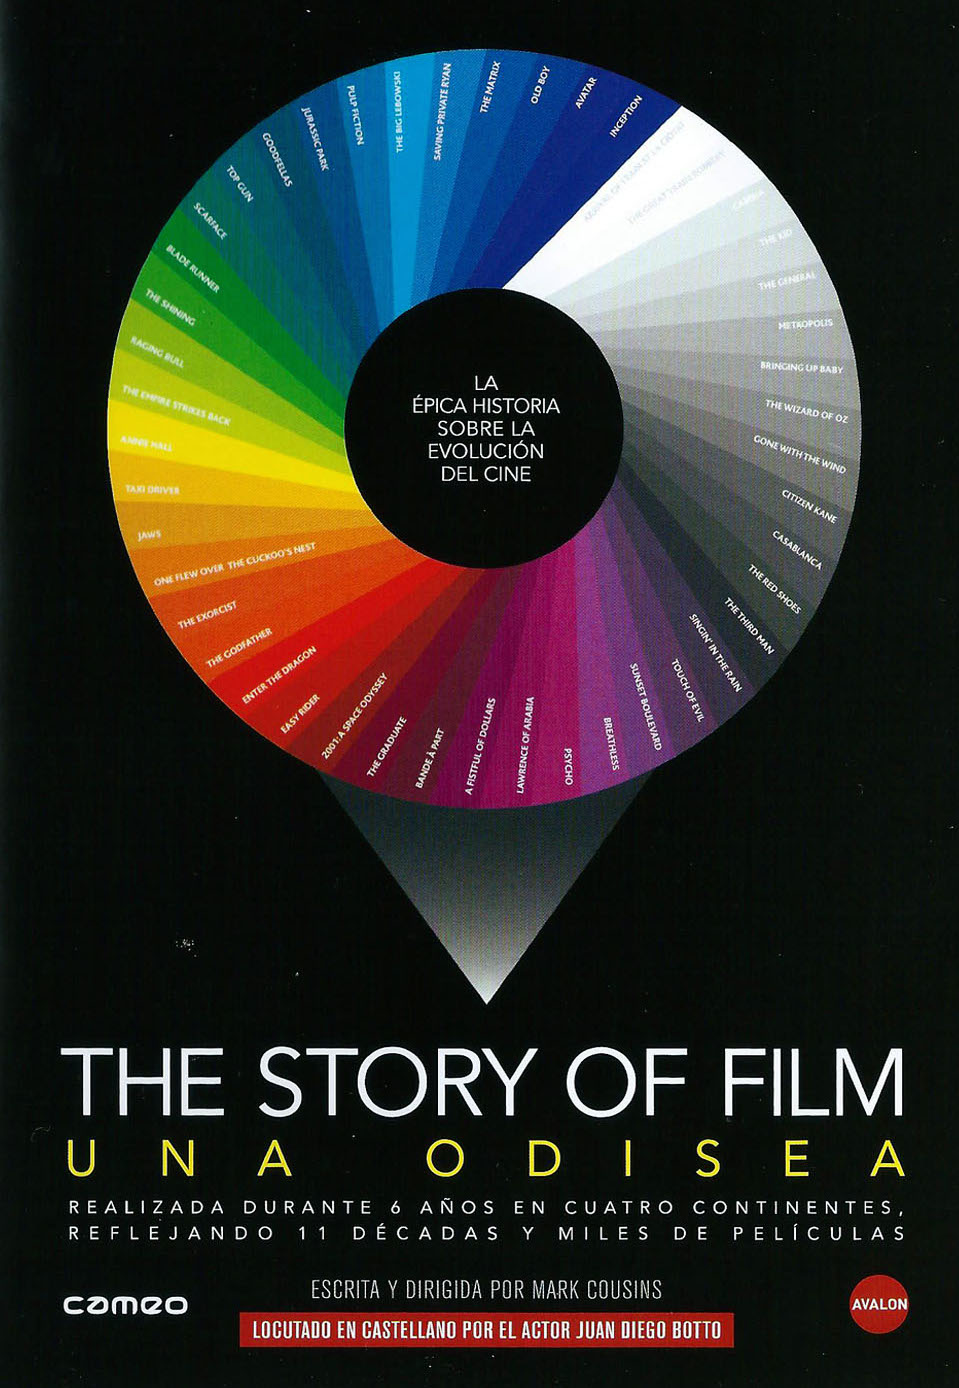 The Story of Film: una odisea